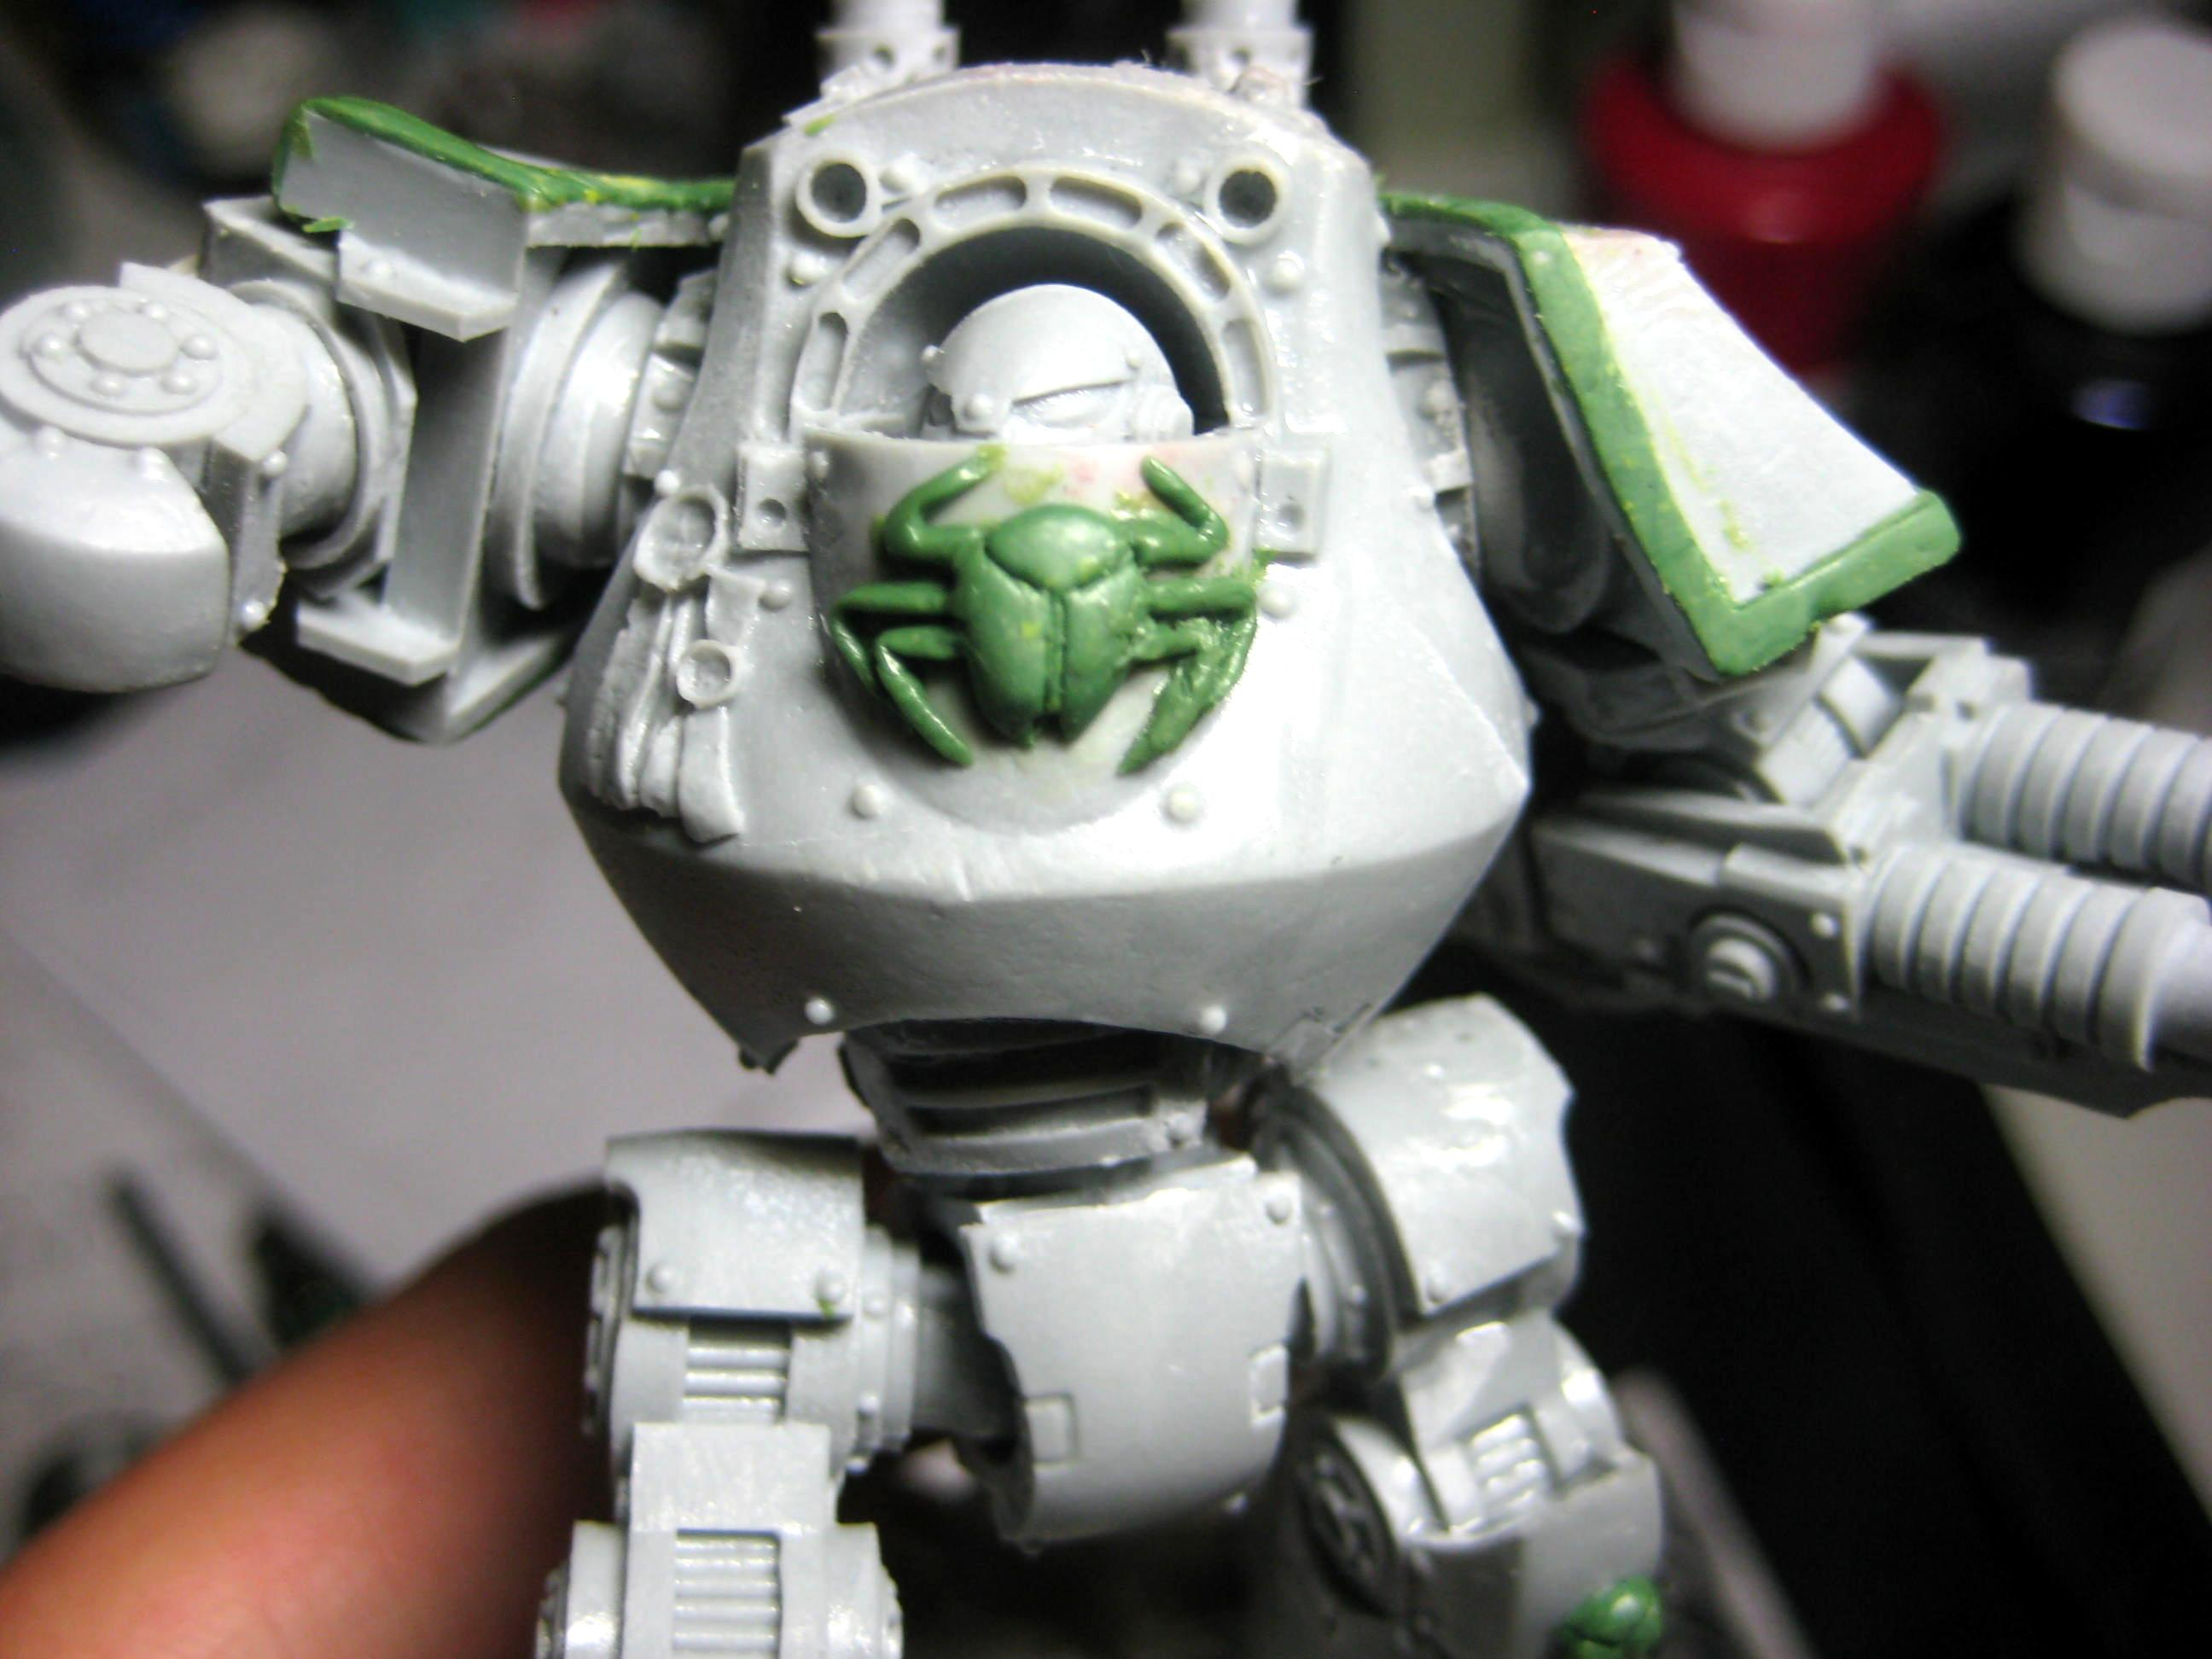 Contemptor, Conversion, Dreadnought, Forge World, Greenstuff, Pre Heresy, Thousand Sons, Warhammer 40,000, Work In Progress